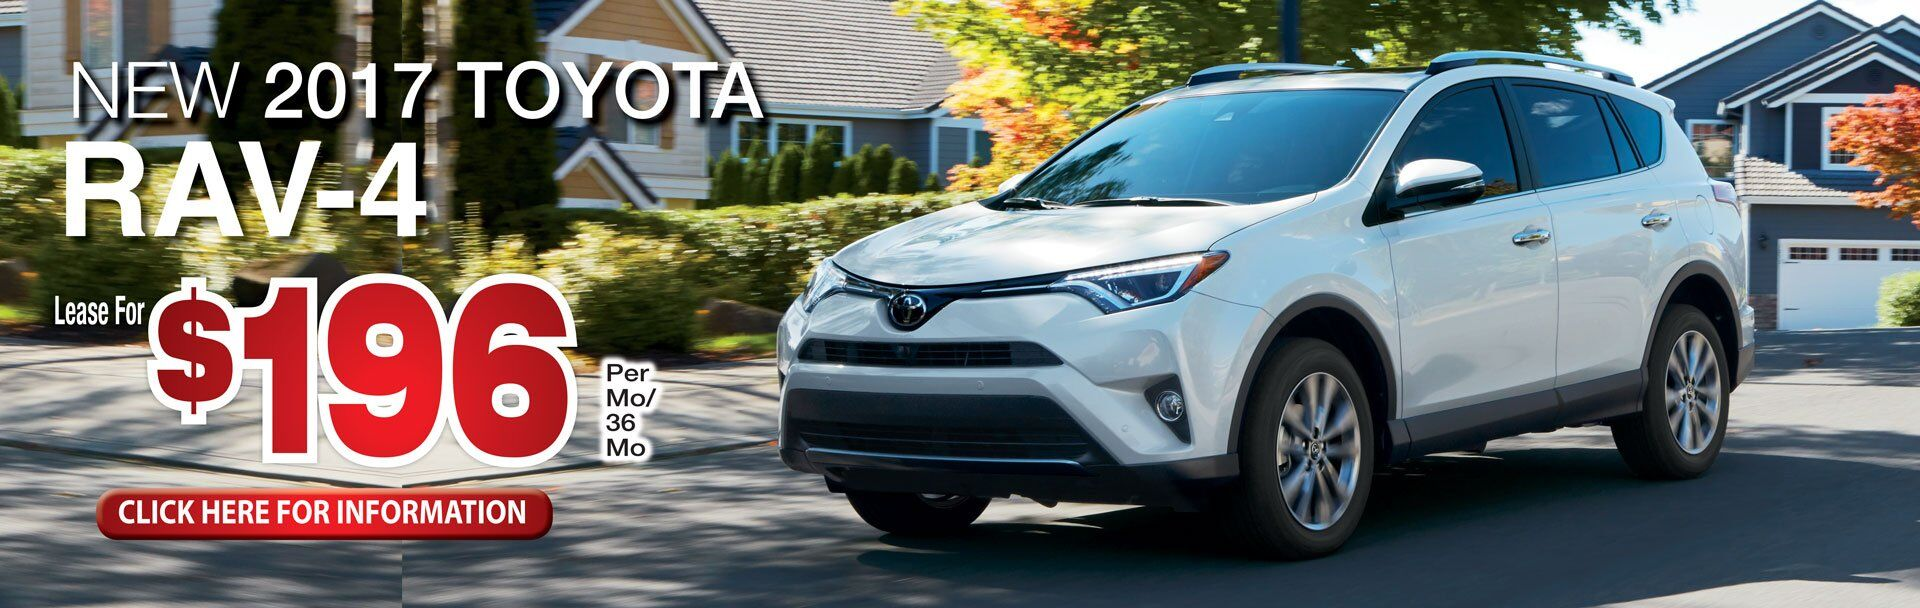 New Rochelle Toyota Used Cars